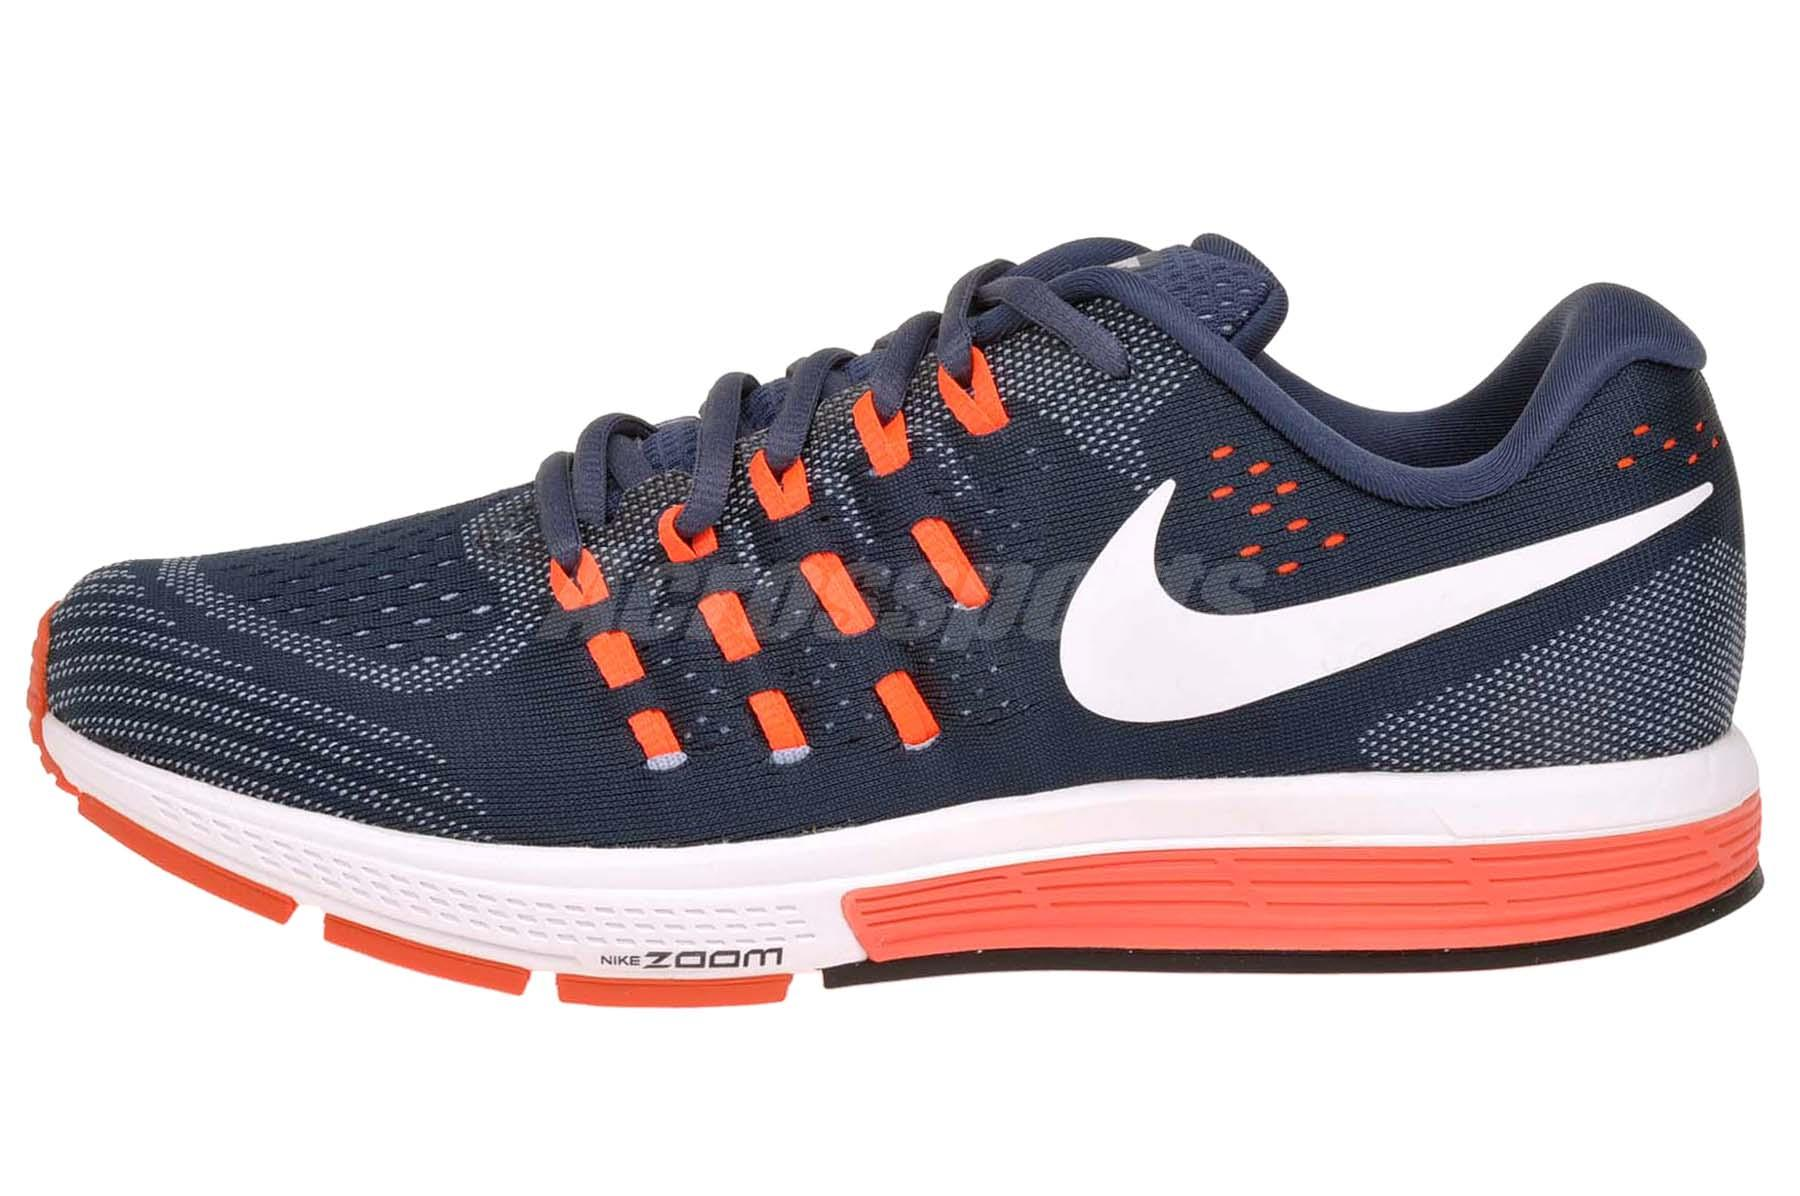 51fd61a7a3d Nike Zoom Vomero 6 Running Shoes Mens Boots